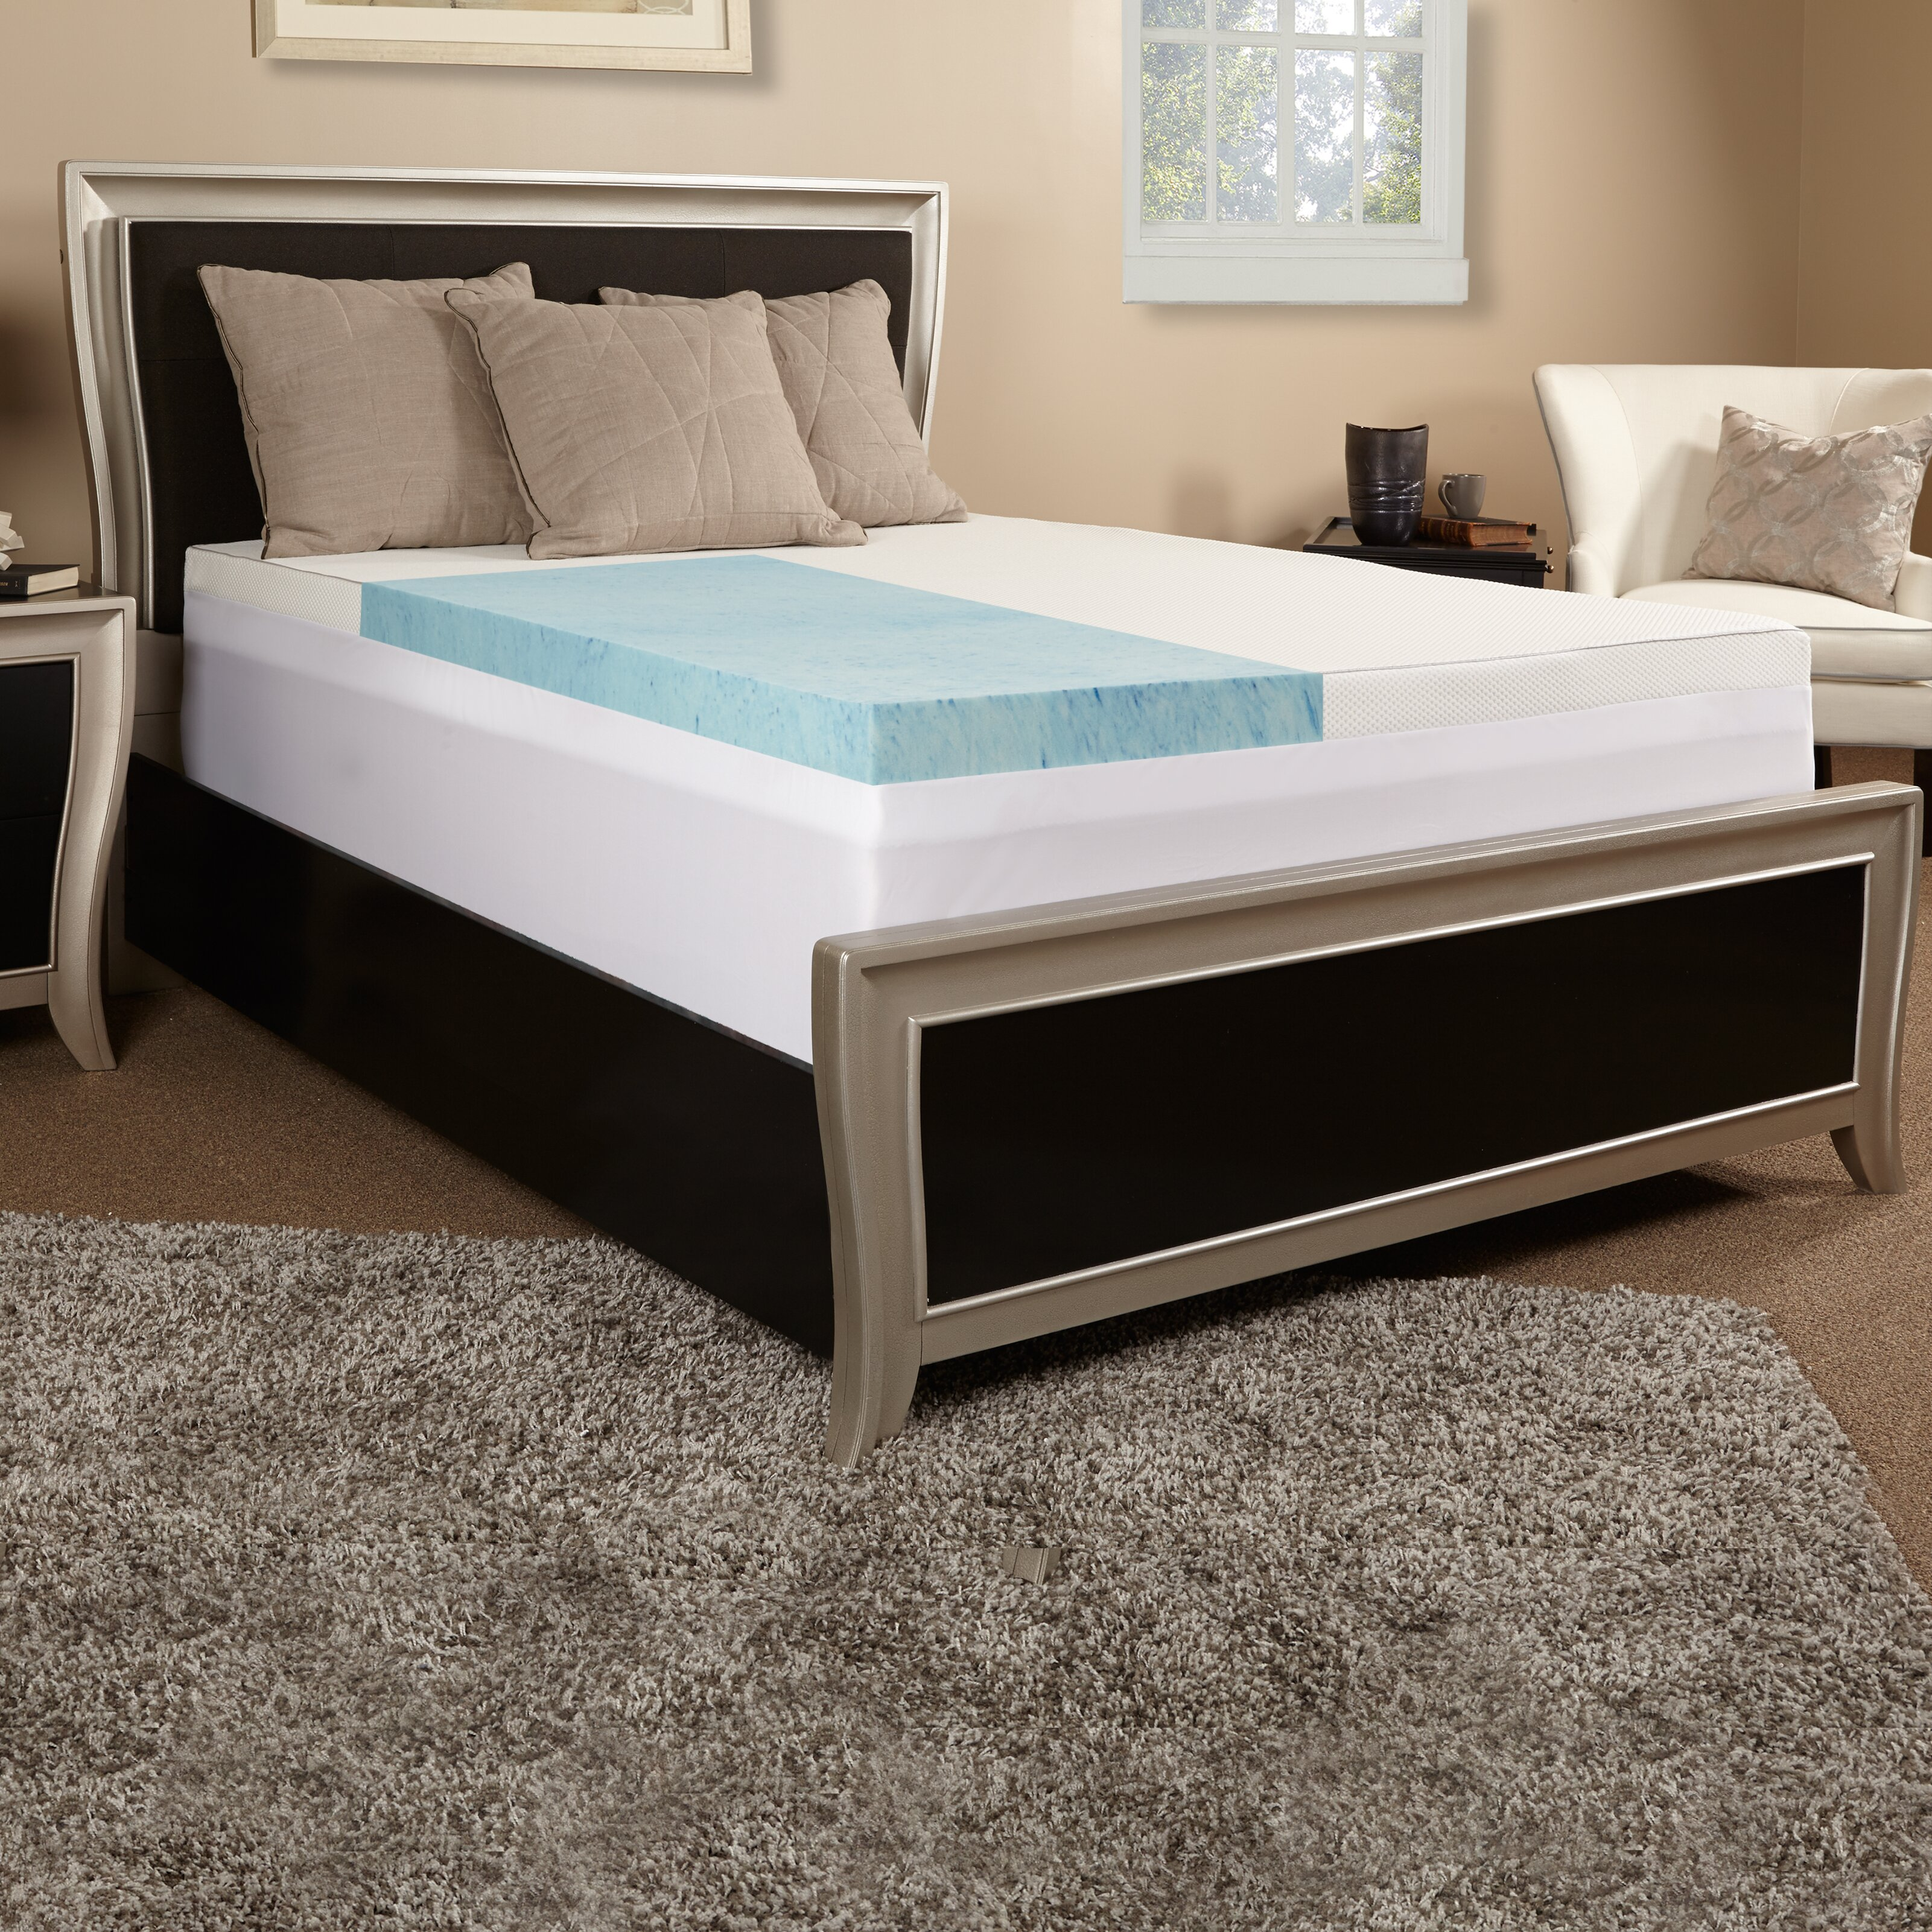 luxury solutions 3 gel memory foam mattress topper w cover reviews wayfair. Black Bedroom Furniture Sets. Home Design Ideas